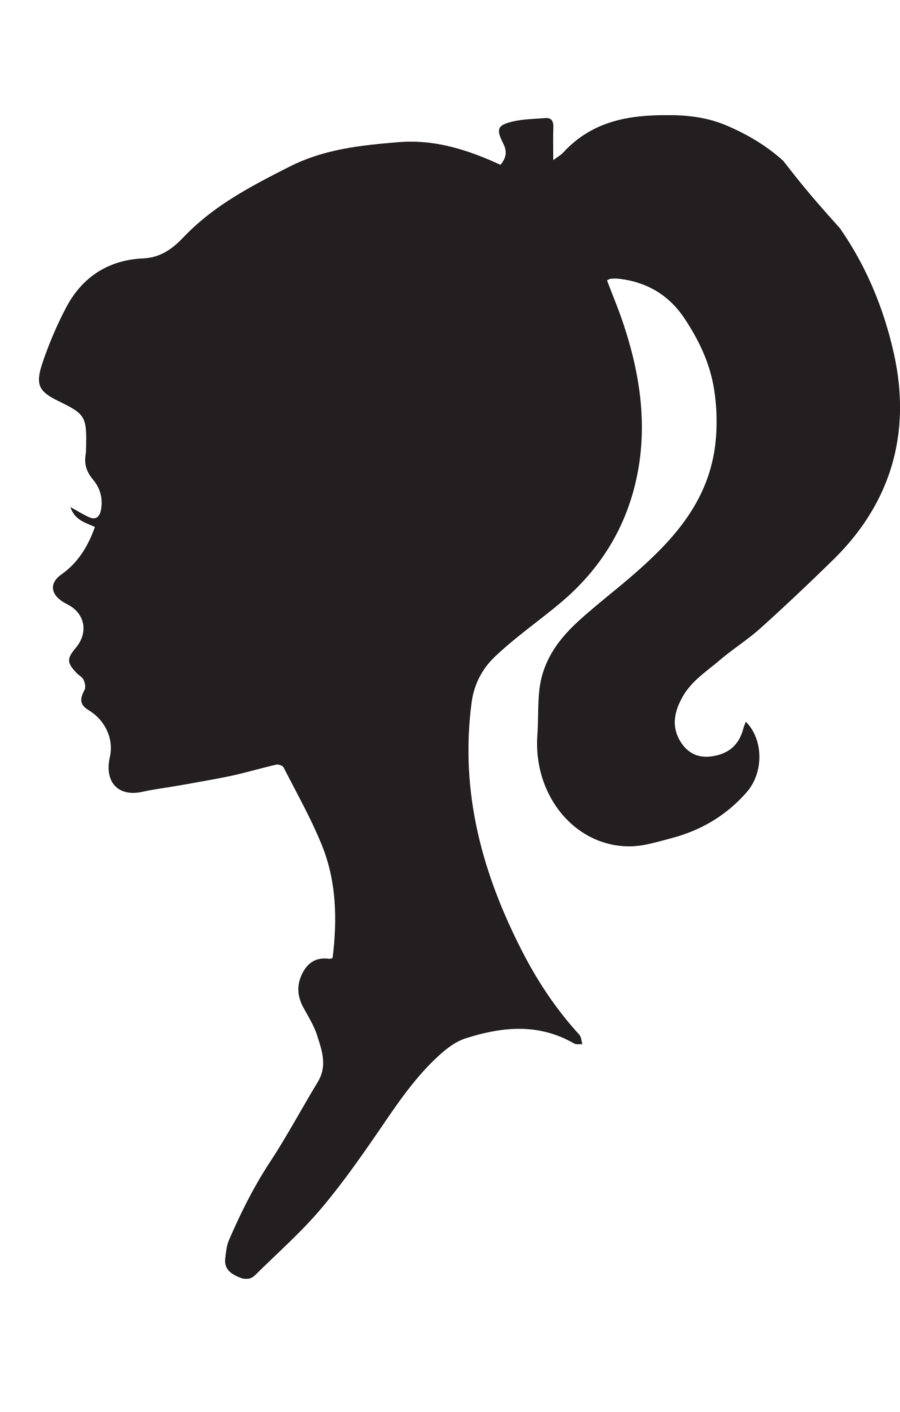 svg freeuse library Drawing silhouette messy bun. Coffin clipart free on